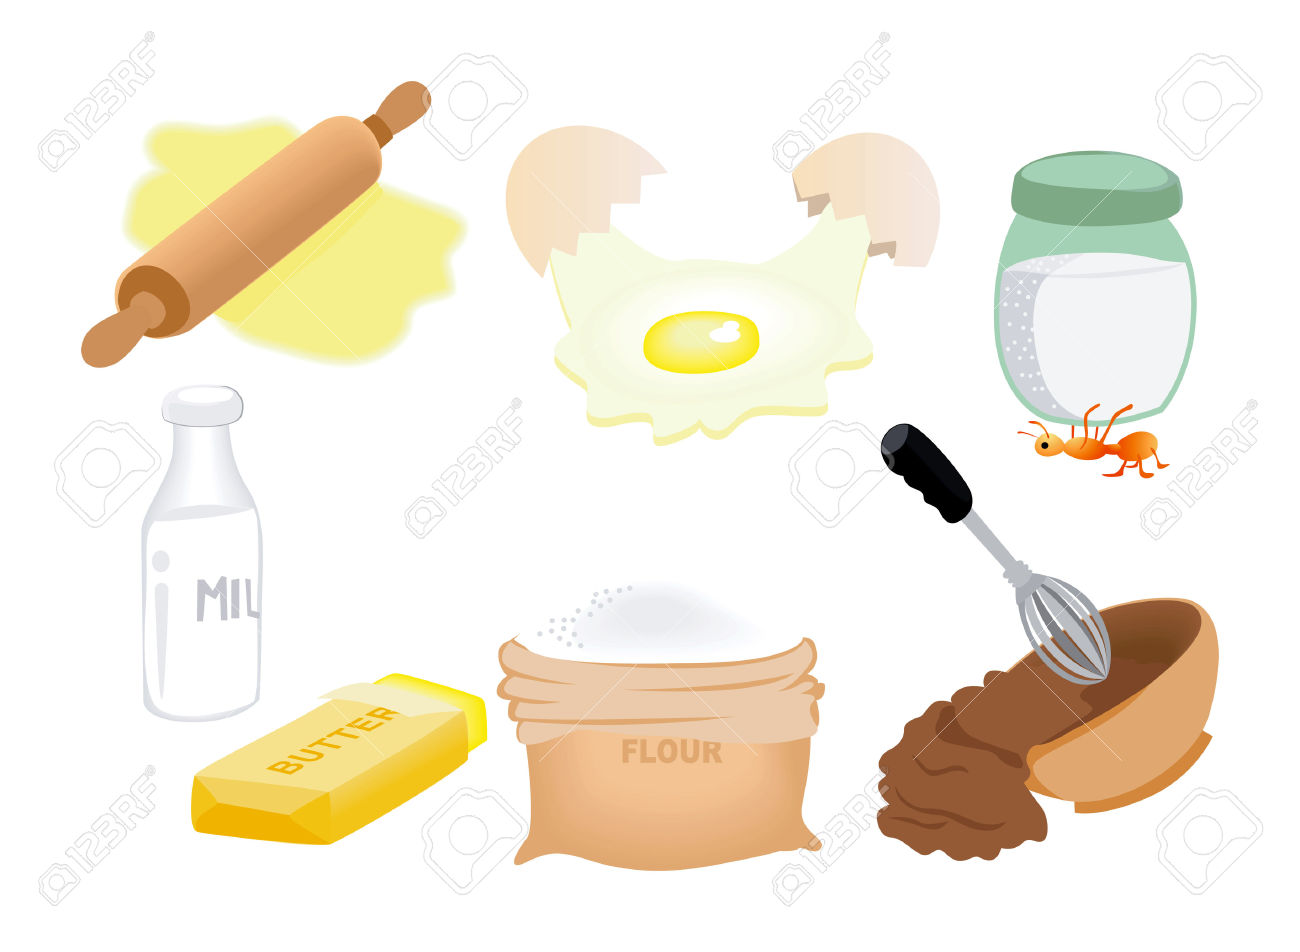 Baking clipart mix ingredient Ingredients Royalty Clipart Cliparts baking